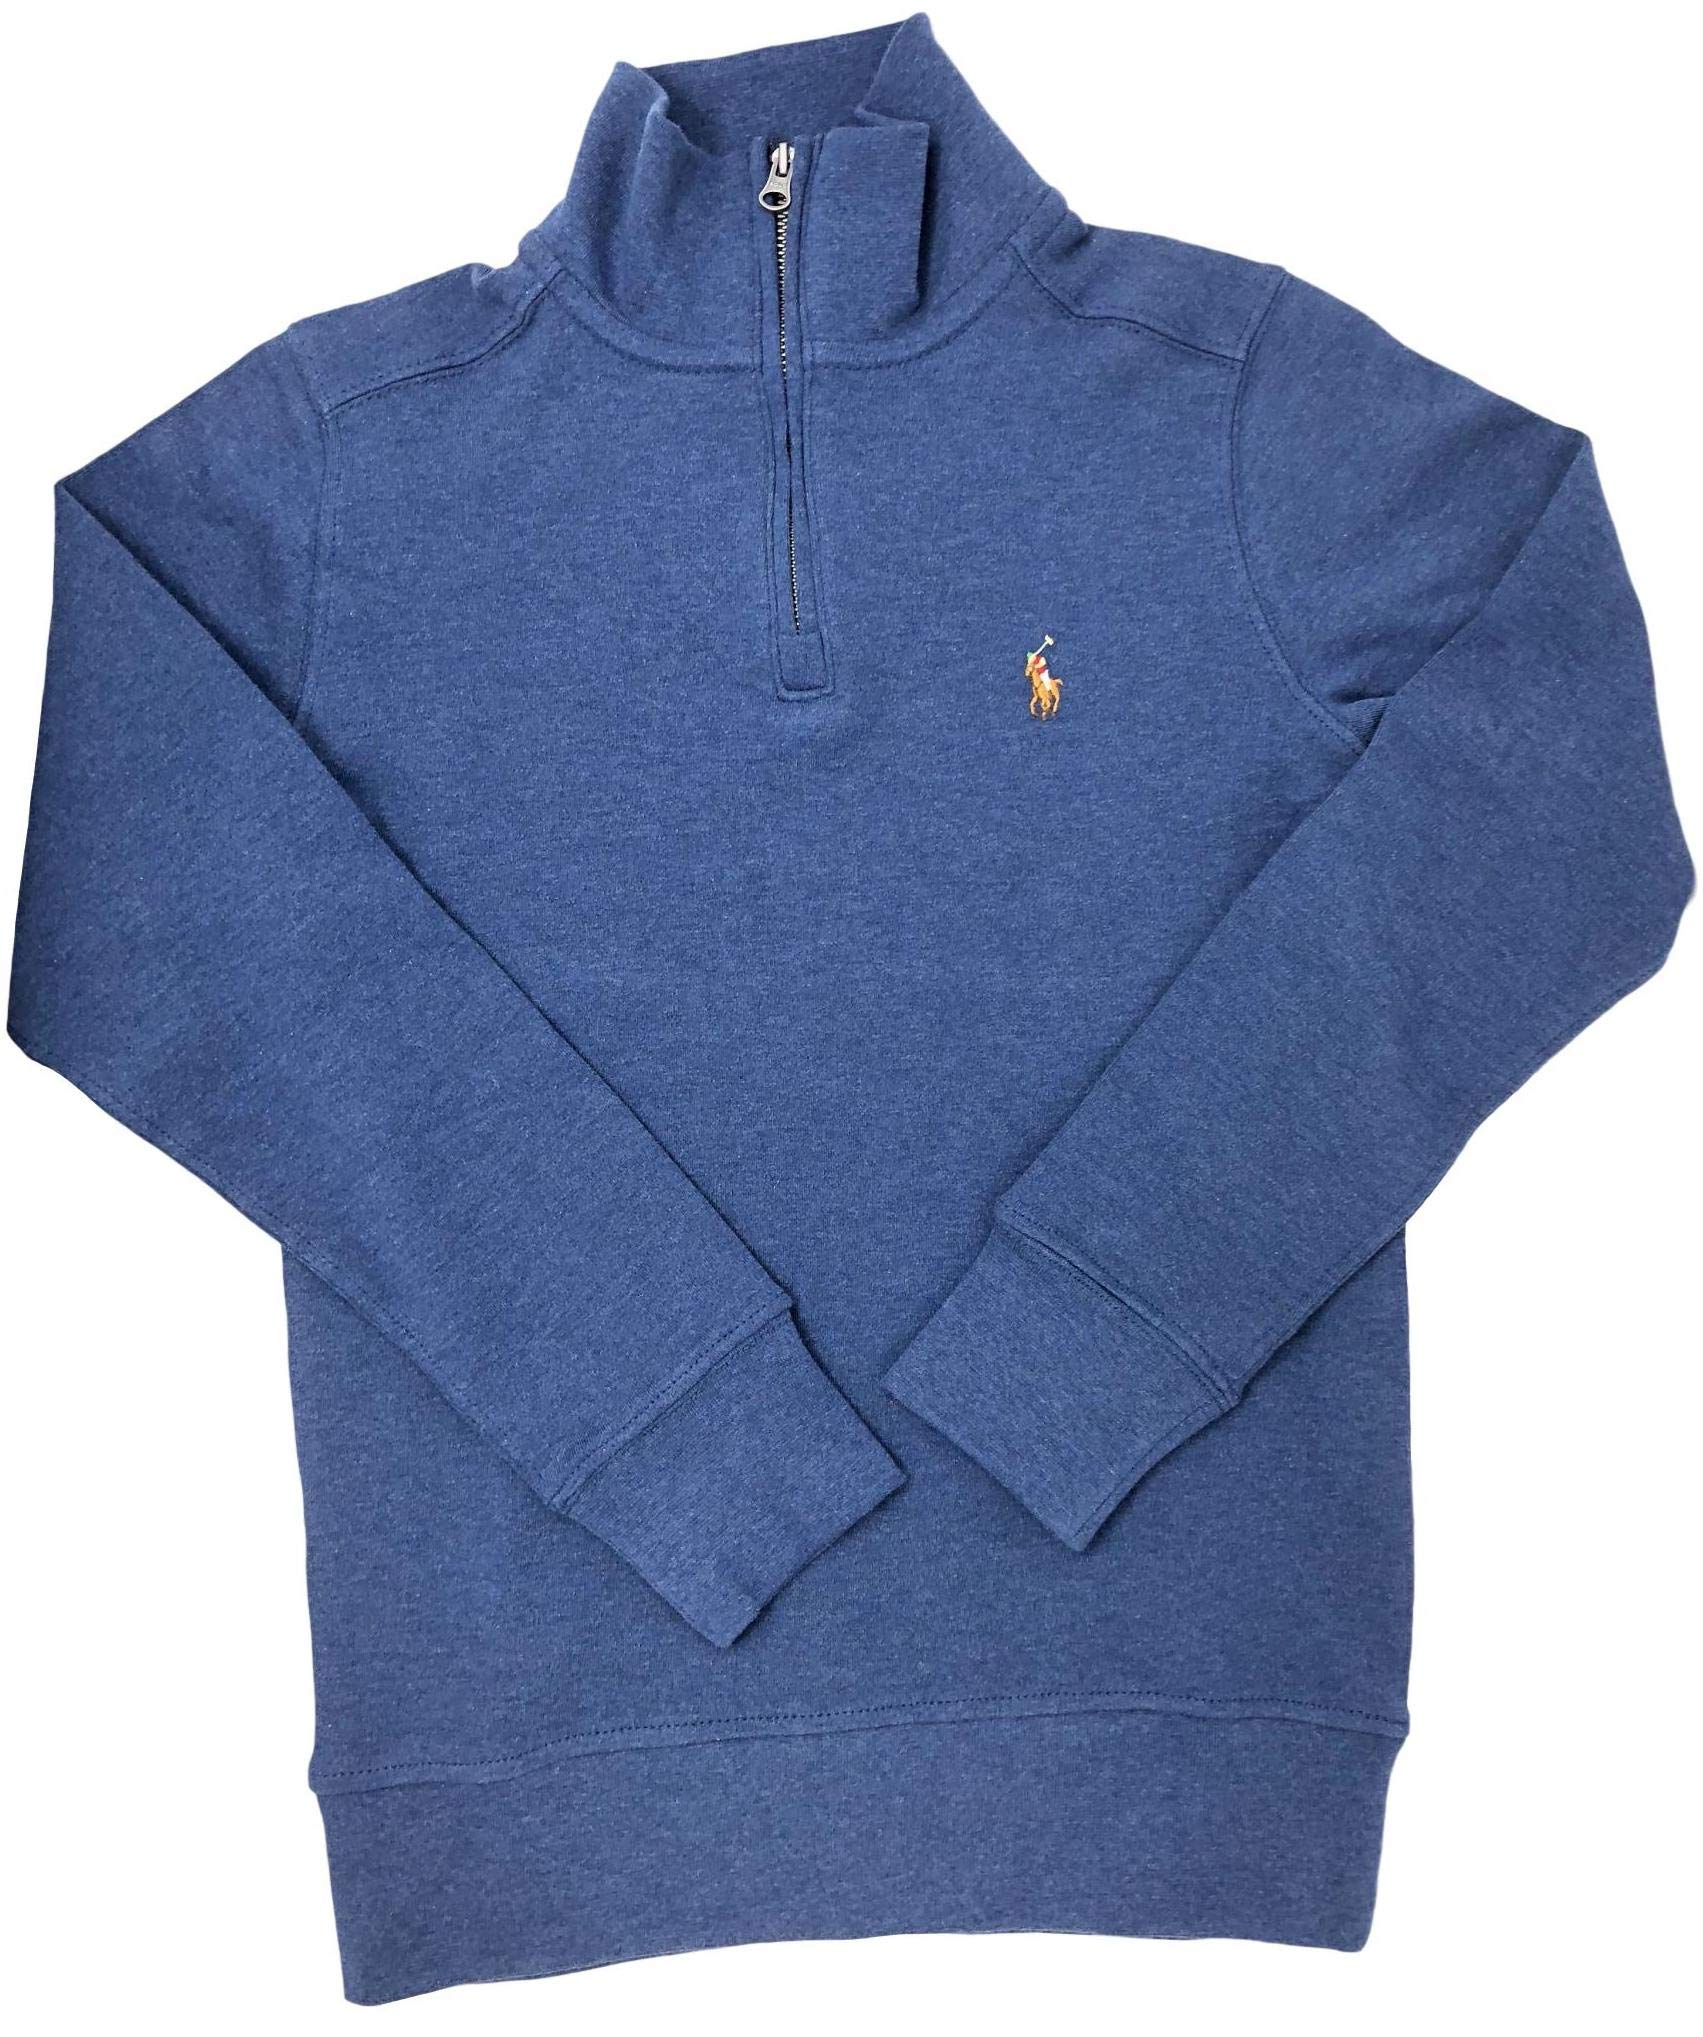 Ralph Lauren Half-Zip Cotton Pullover, Big Boys NavyHth (M)